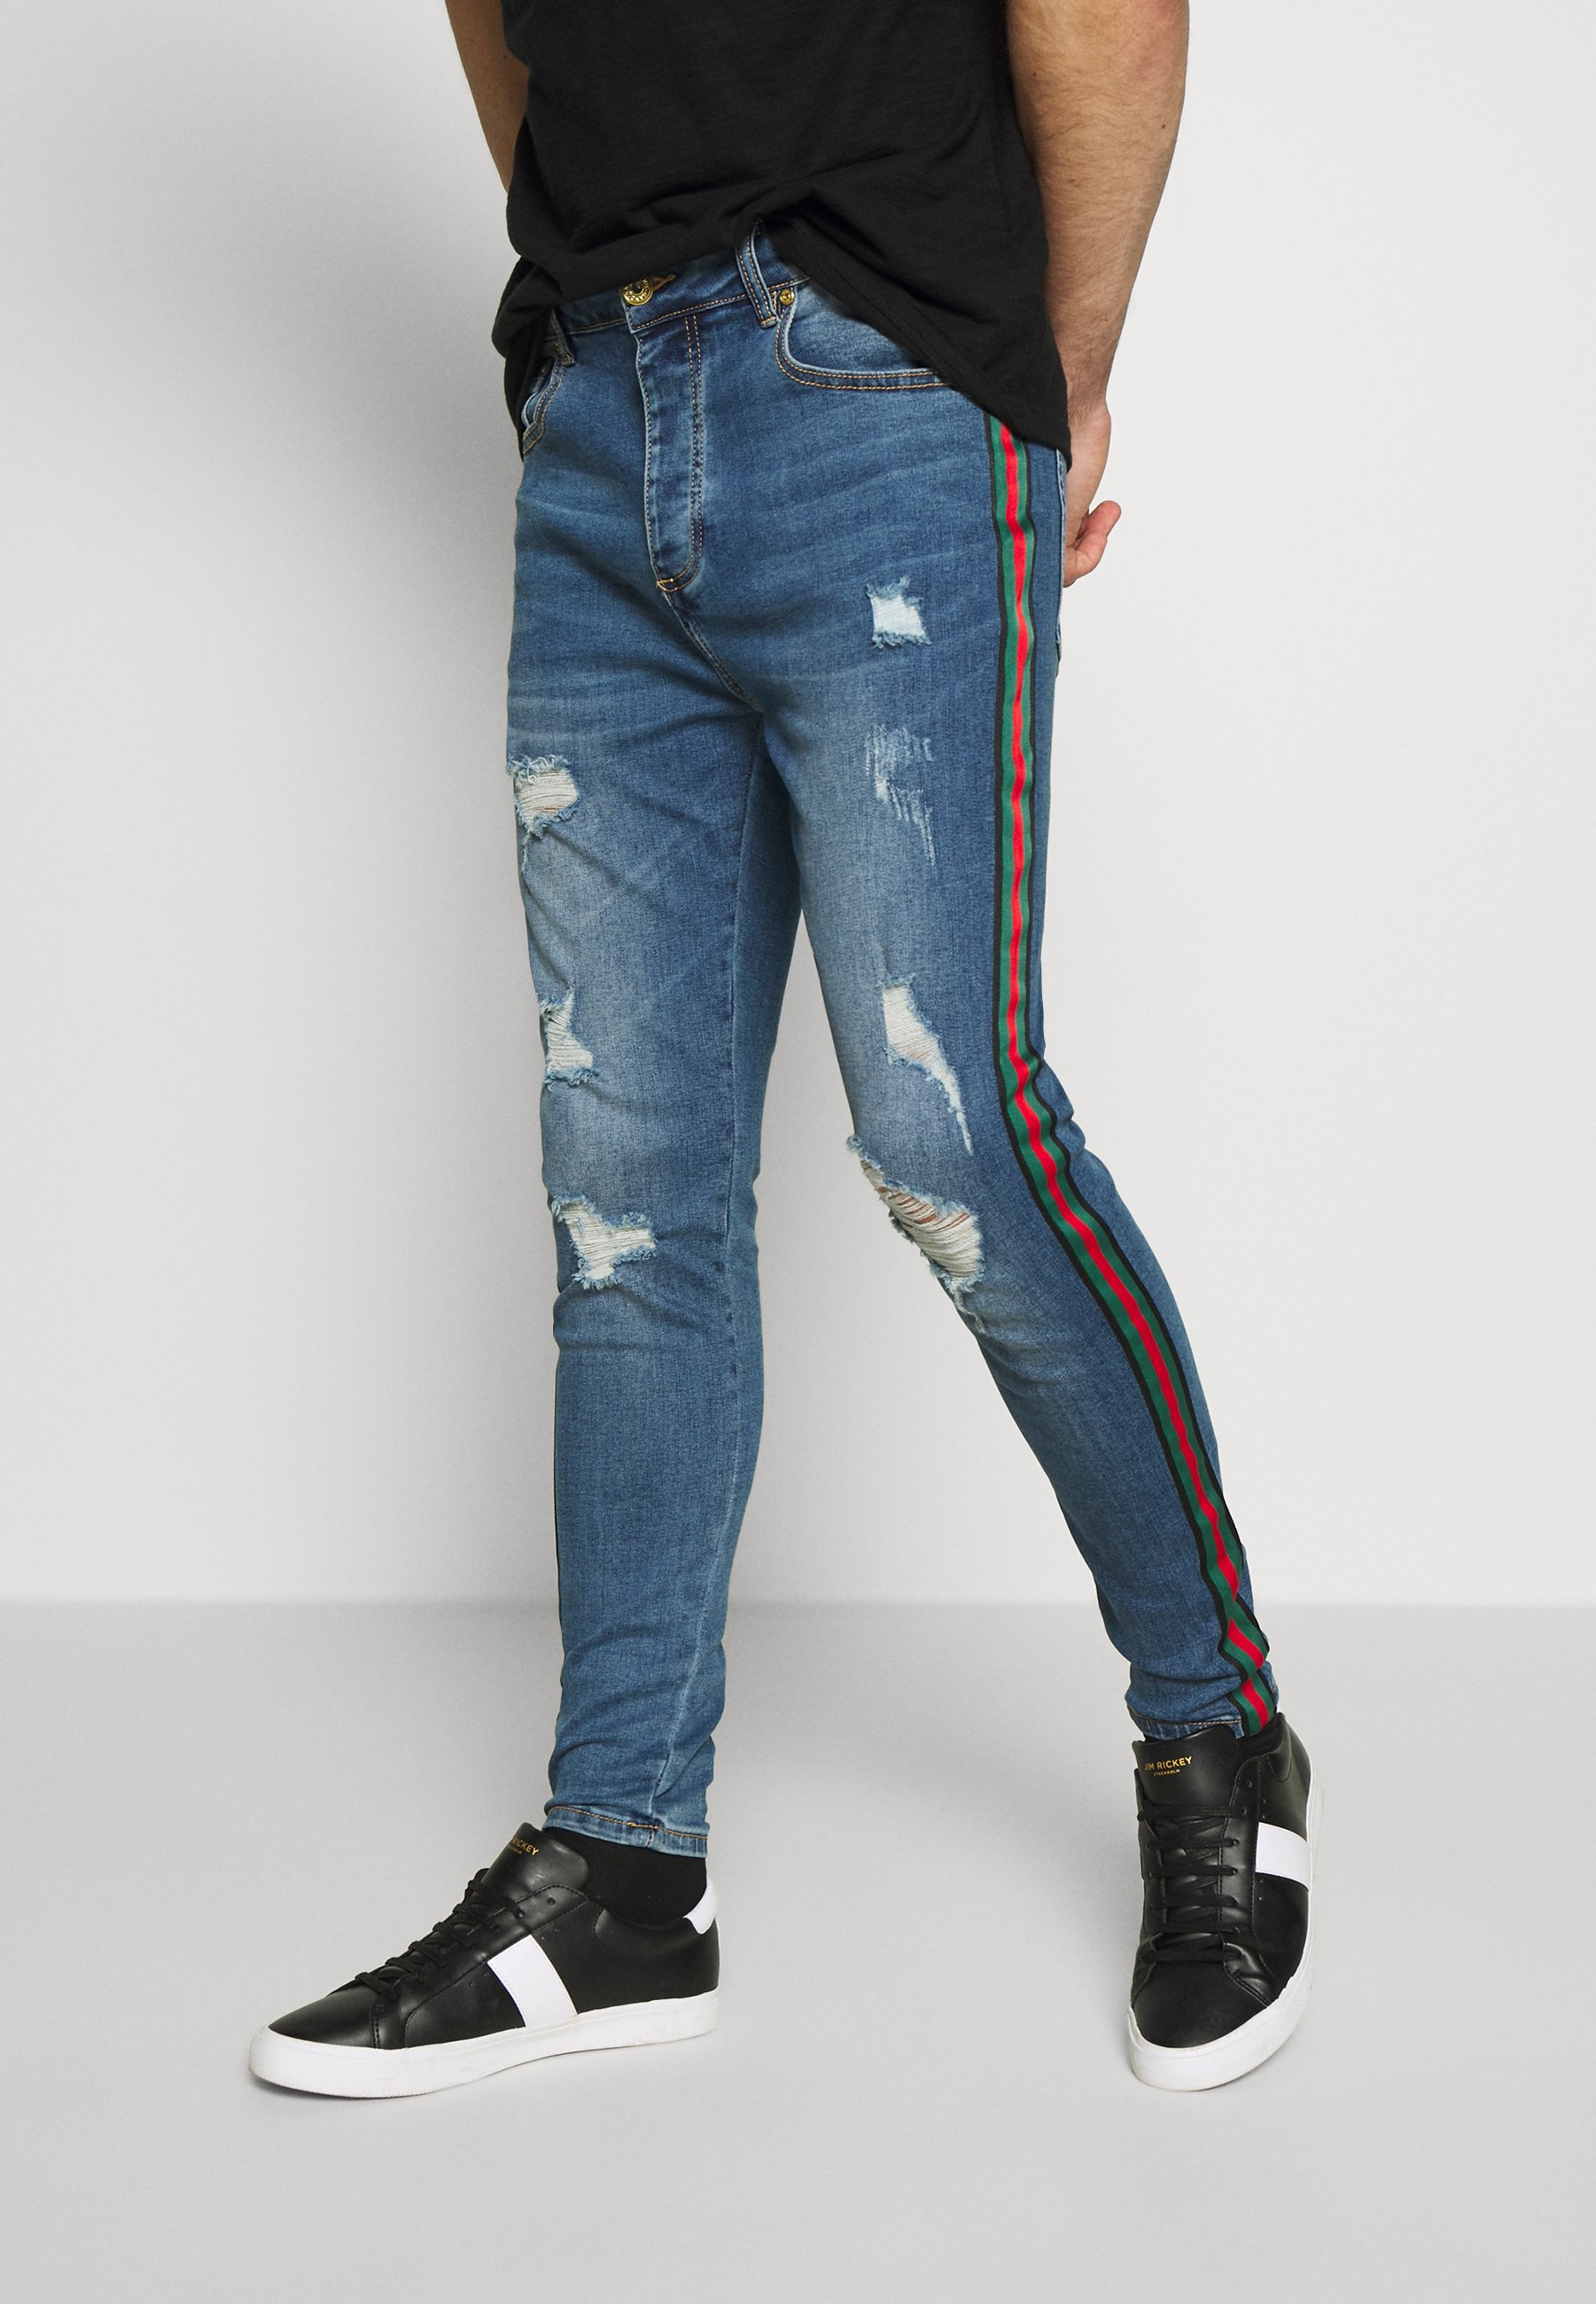 Glorious Gangsta Jeansy Skinny Fit - blue